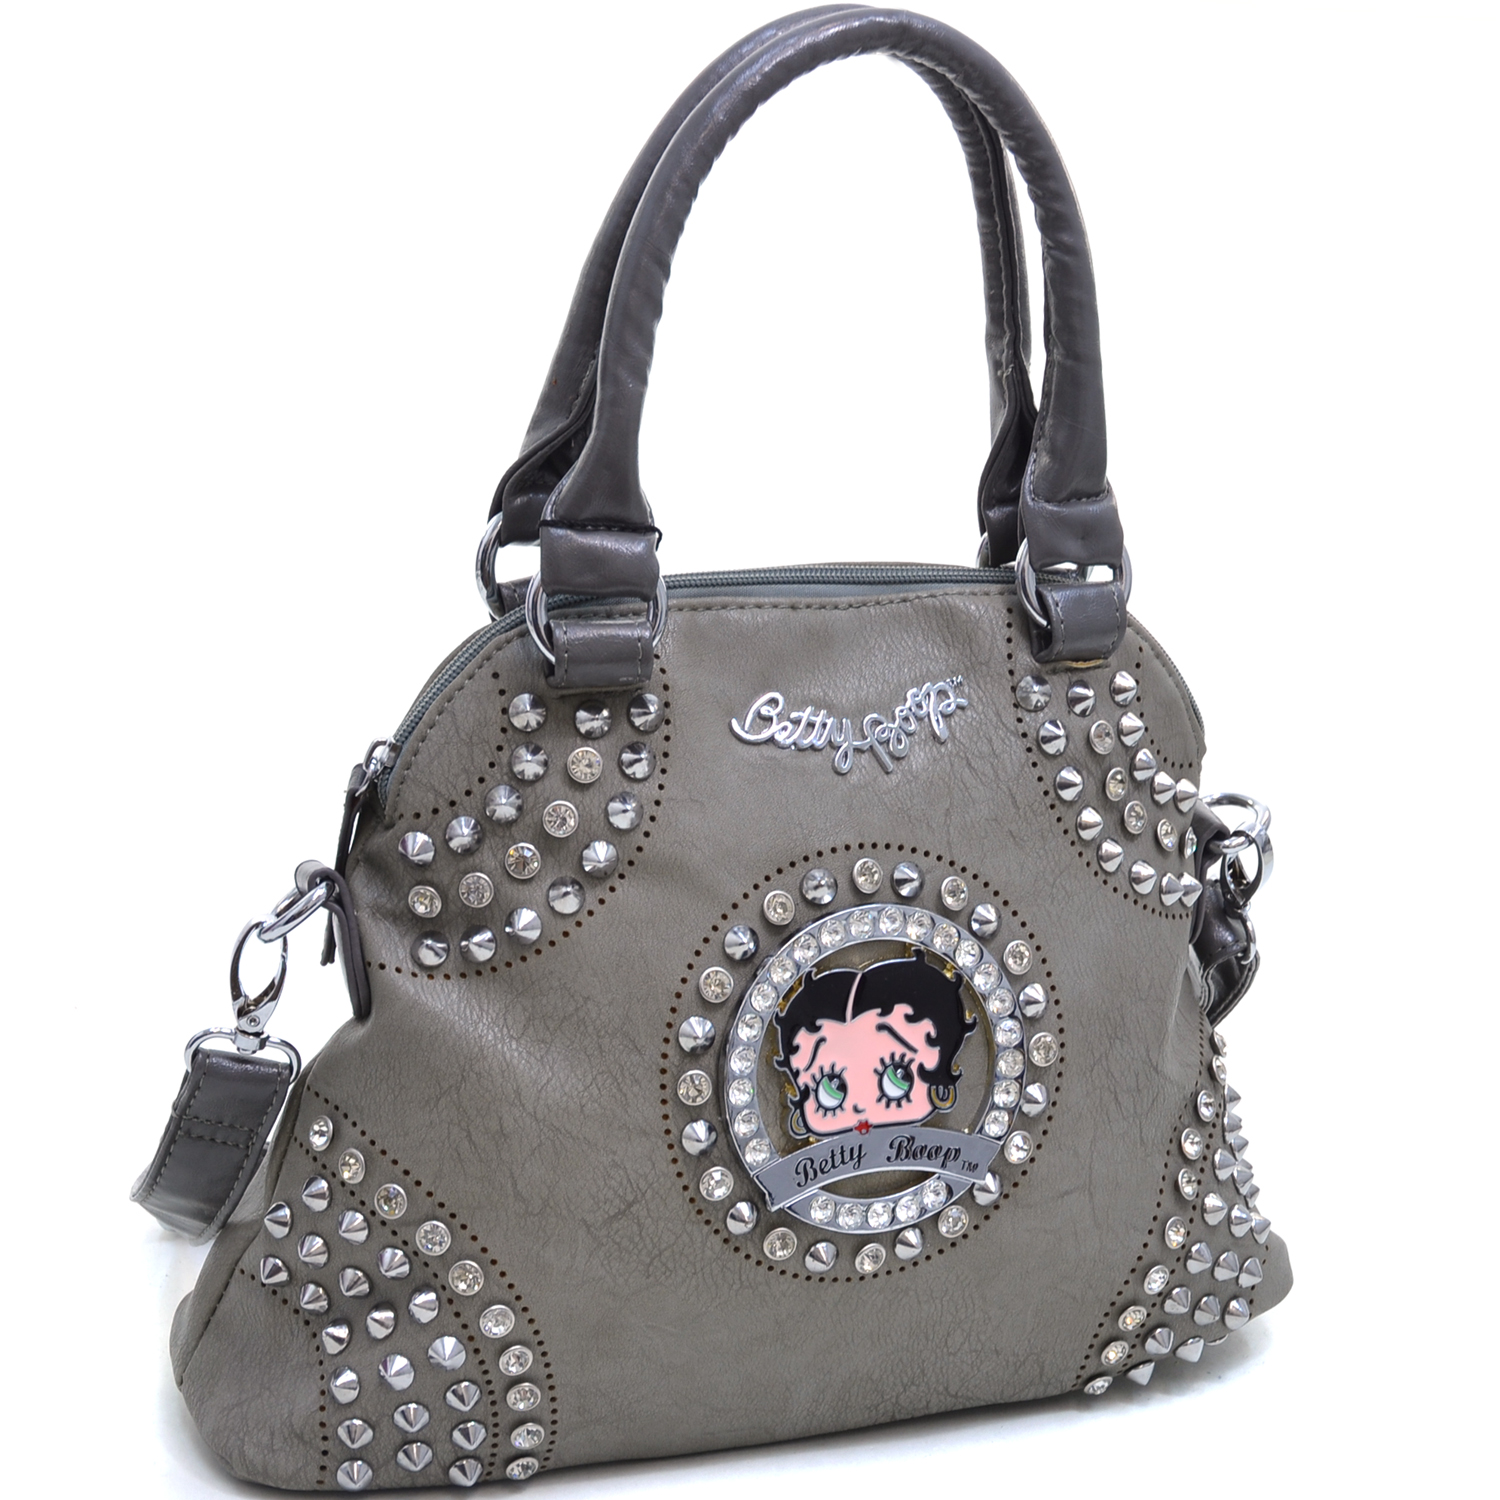 Betty Boop Petite Satchel Bag with Rhinestone and Cone Studded Accents